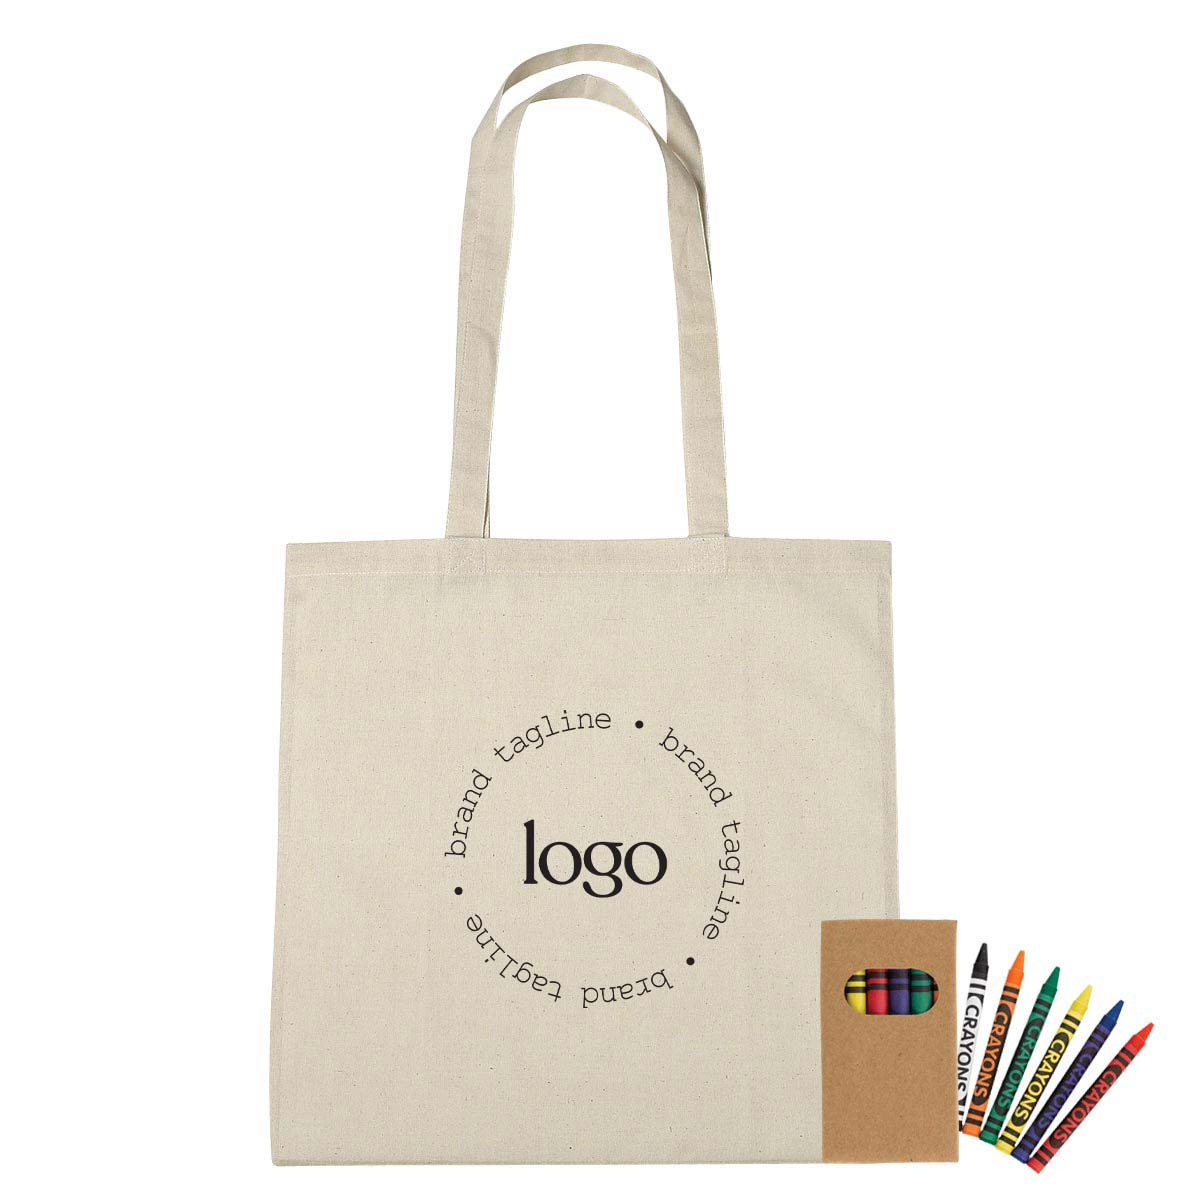 302334 canvas coloring tote bag one color one location imprint